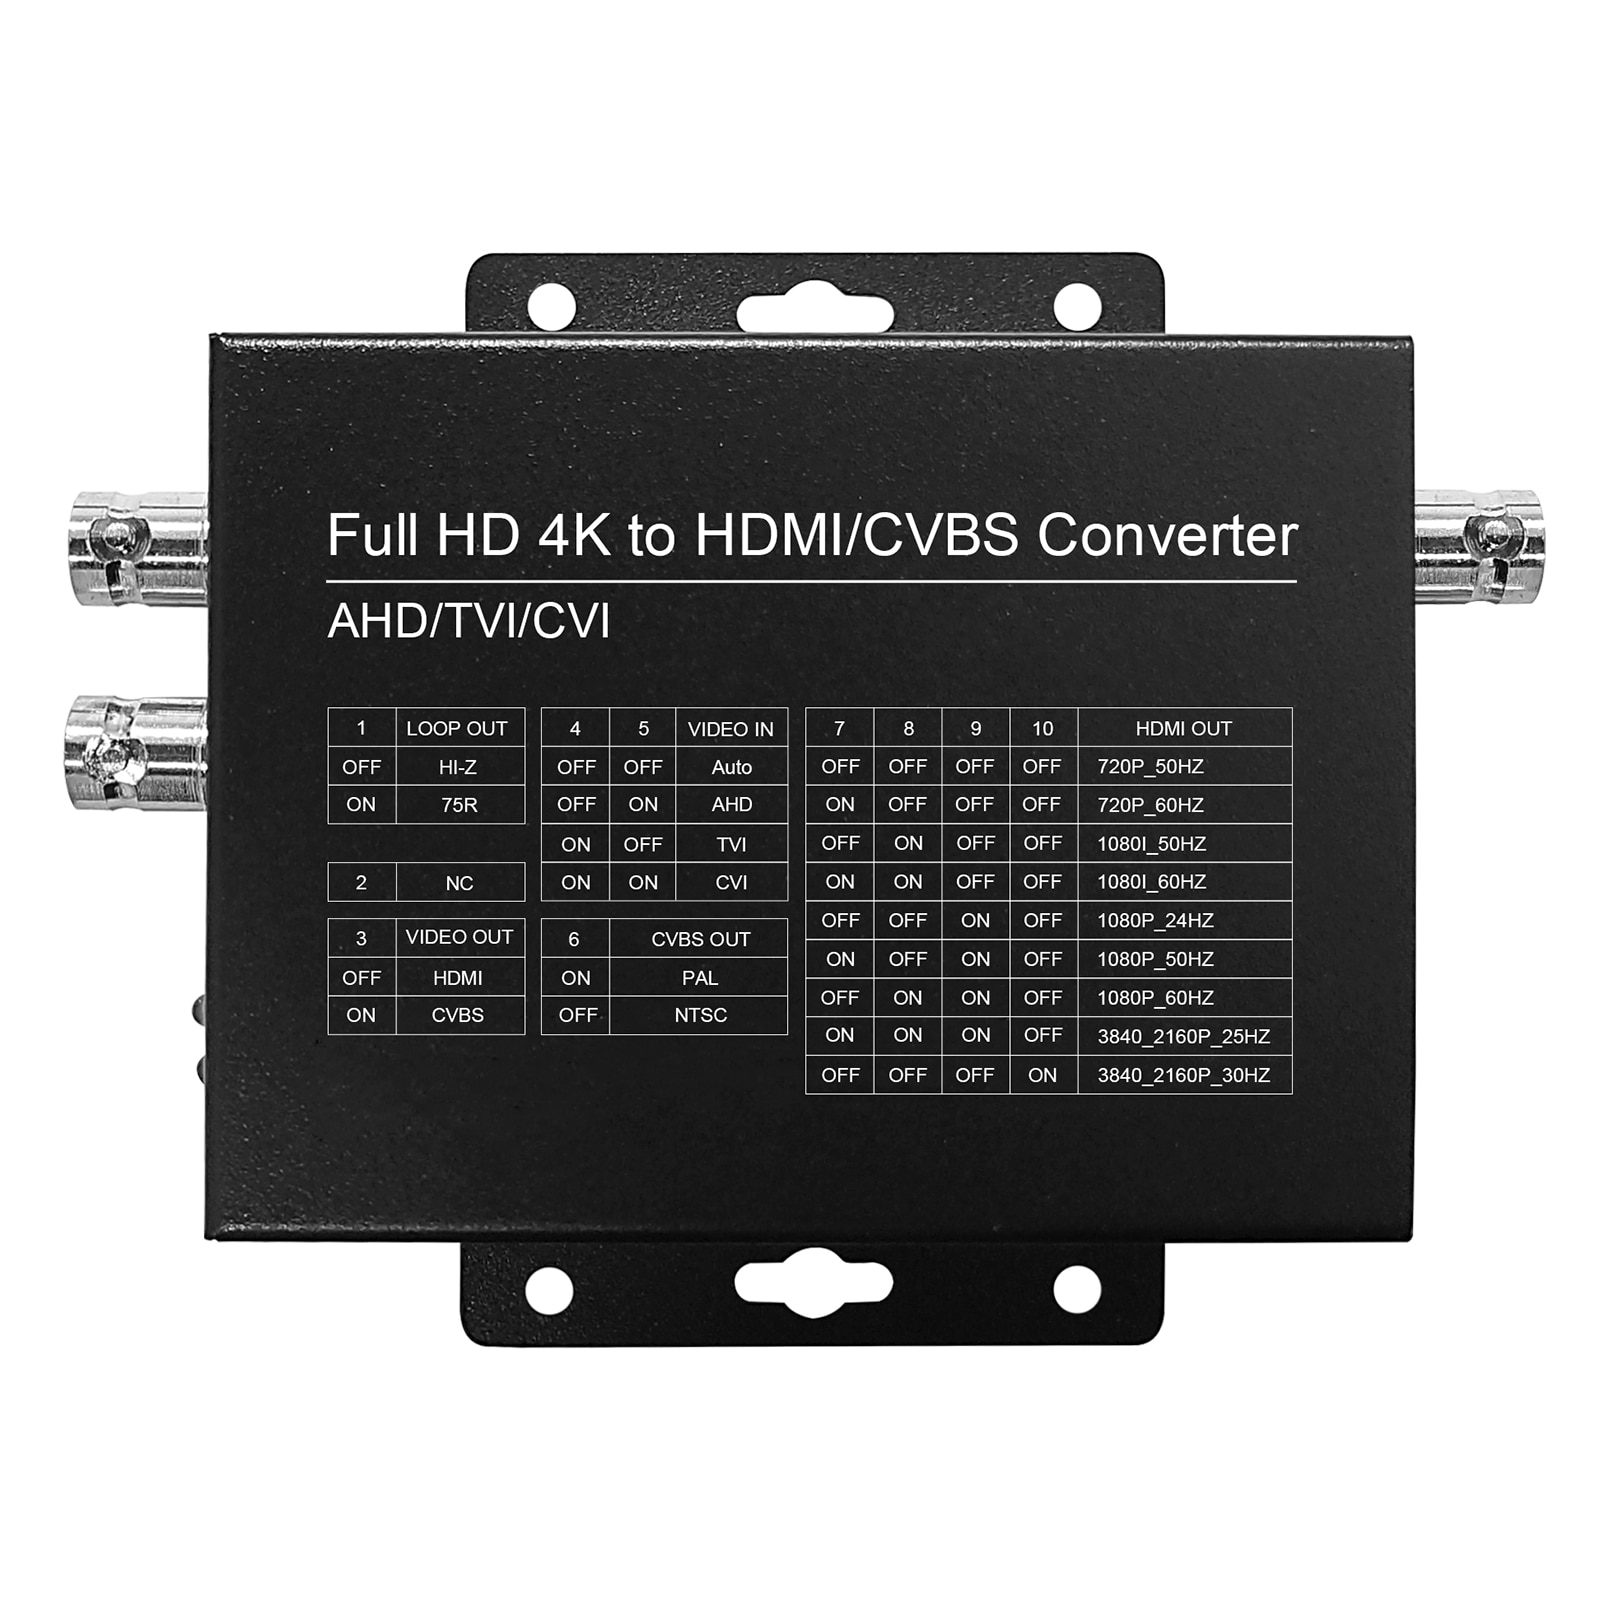 HDMI-Compatible CVI/TVI/AHD+CVBS to HDMI Converter Connect Auto Recognition FULL HD Monitor 4K 8MP Video Converter Adapter enlarge